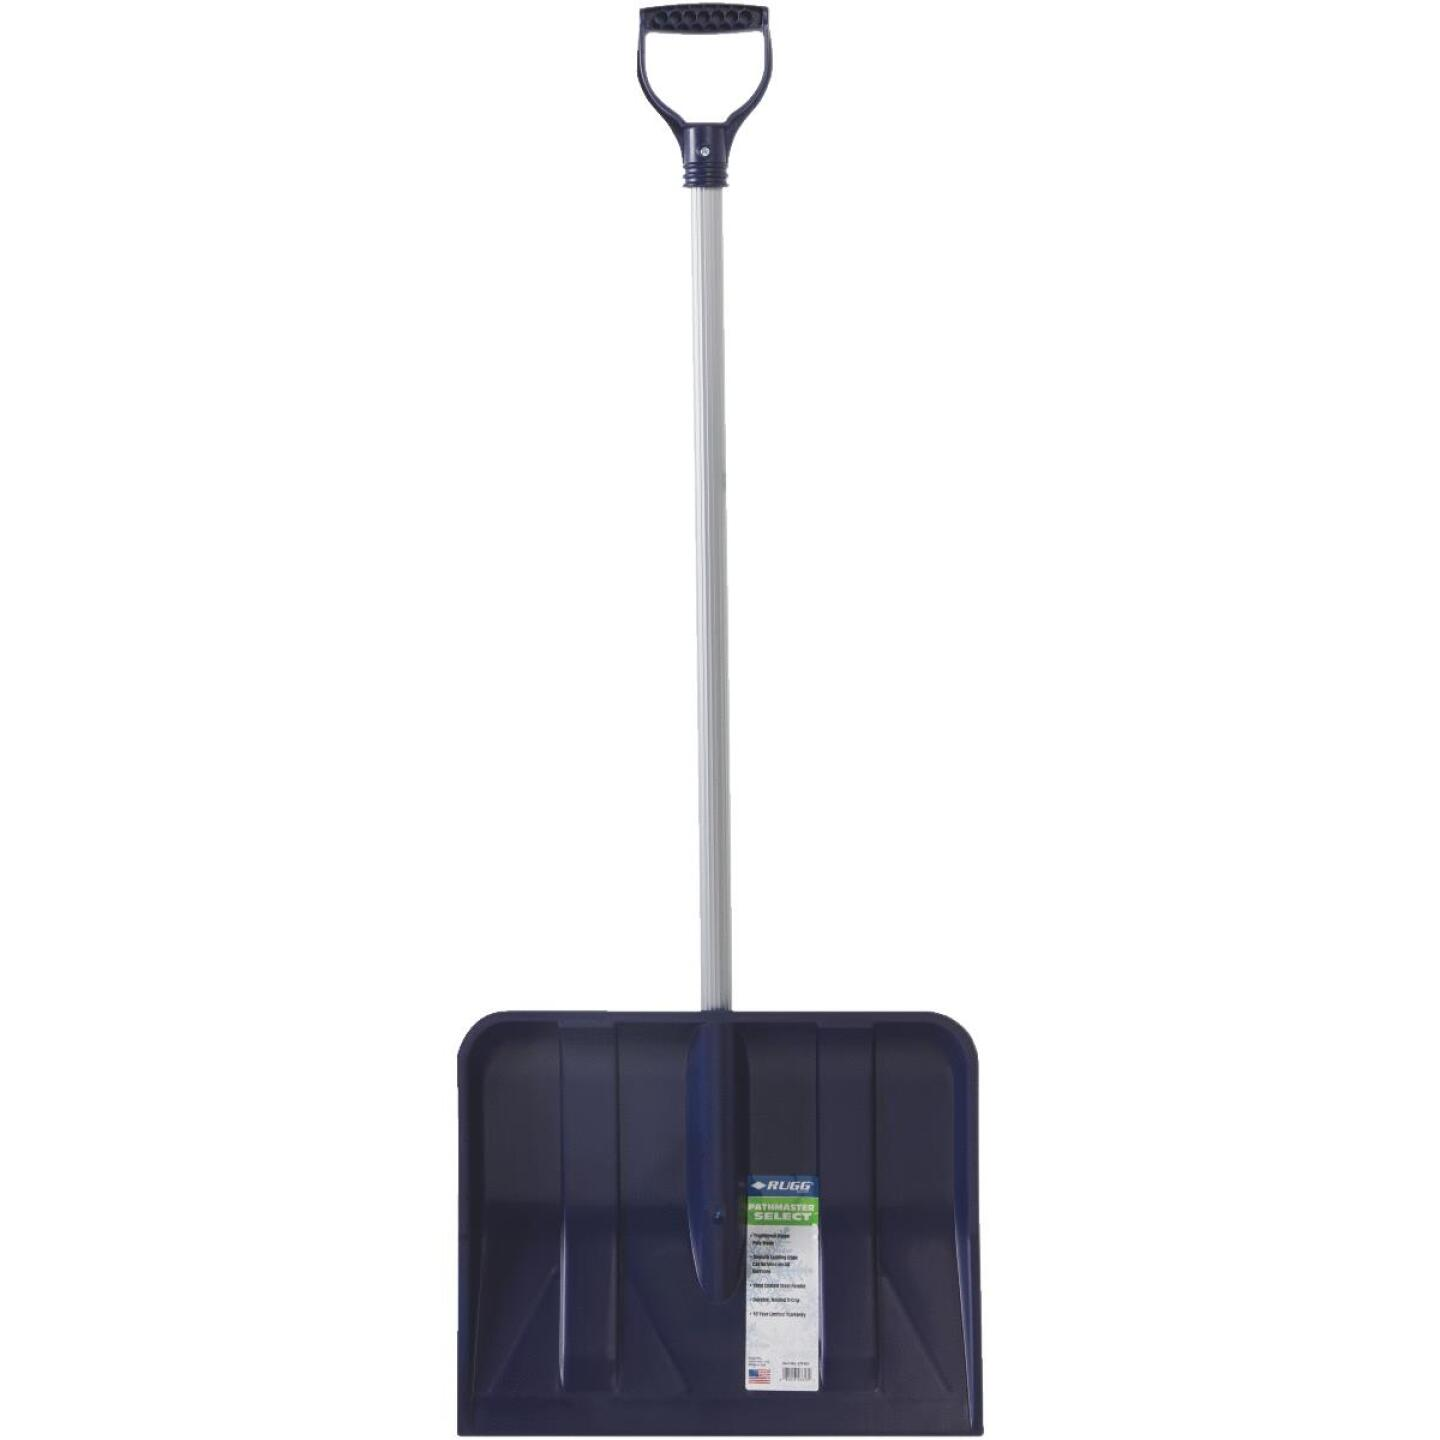 Rugg 18 In. Poly Snow Shovel with 35 In. Steel Handle Image 3